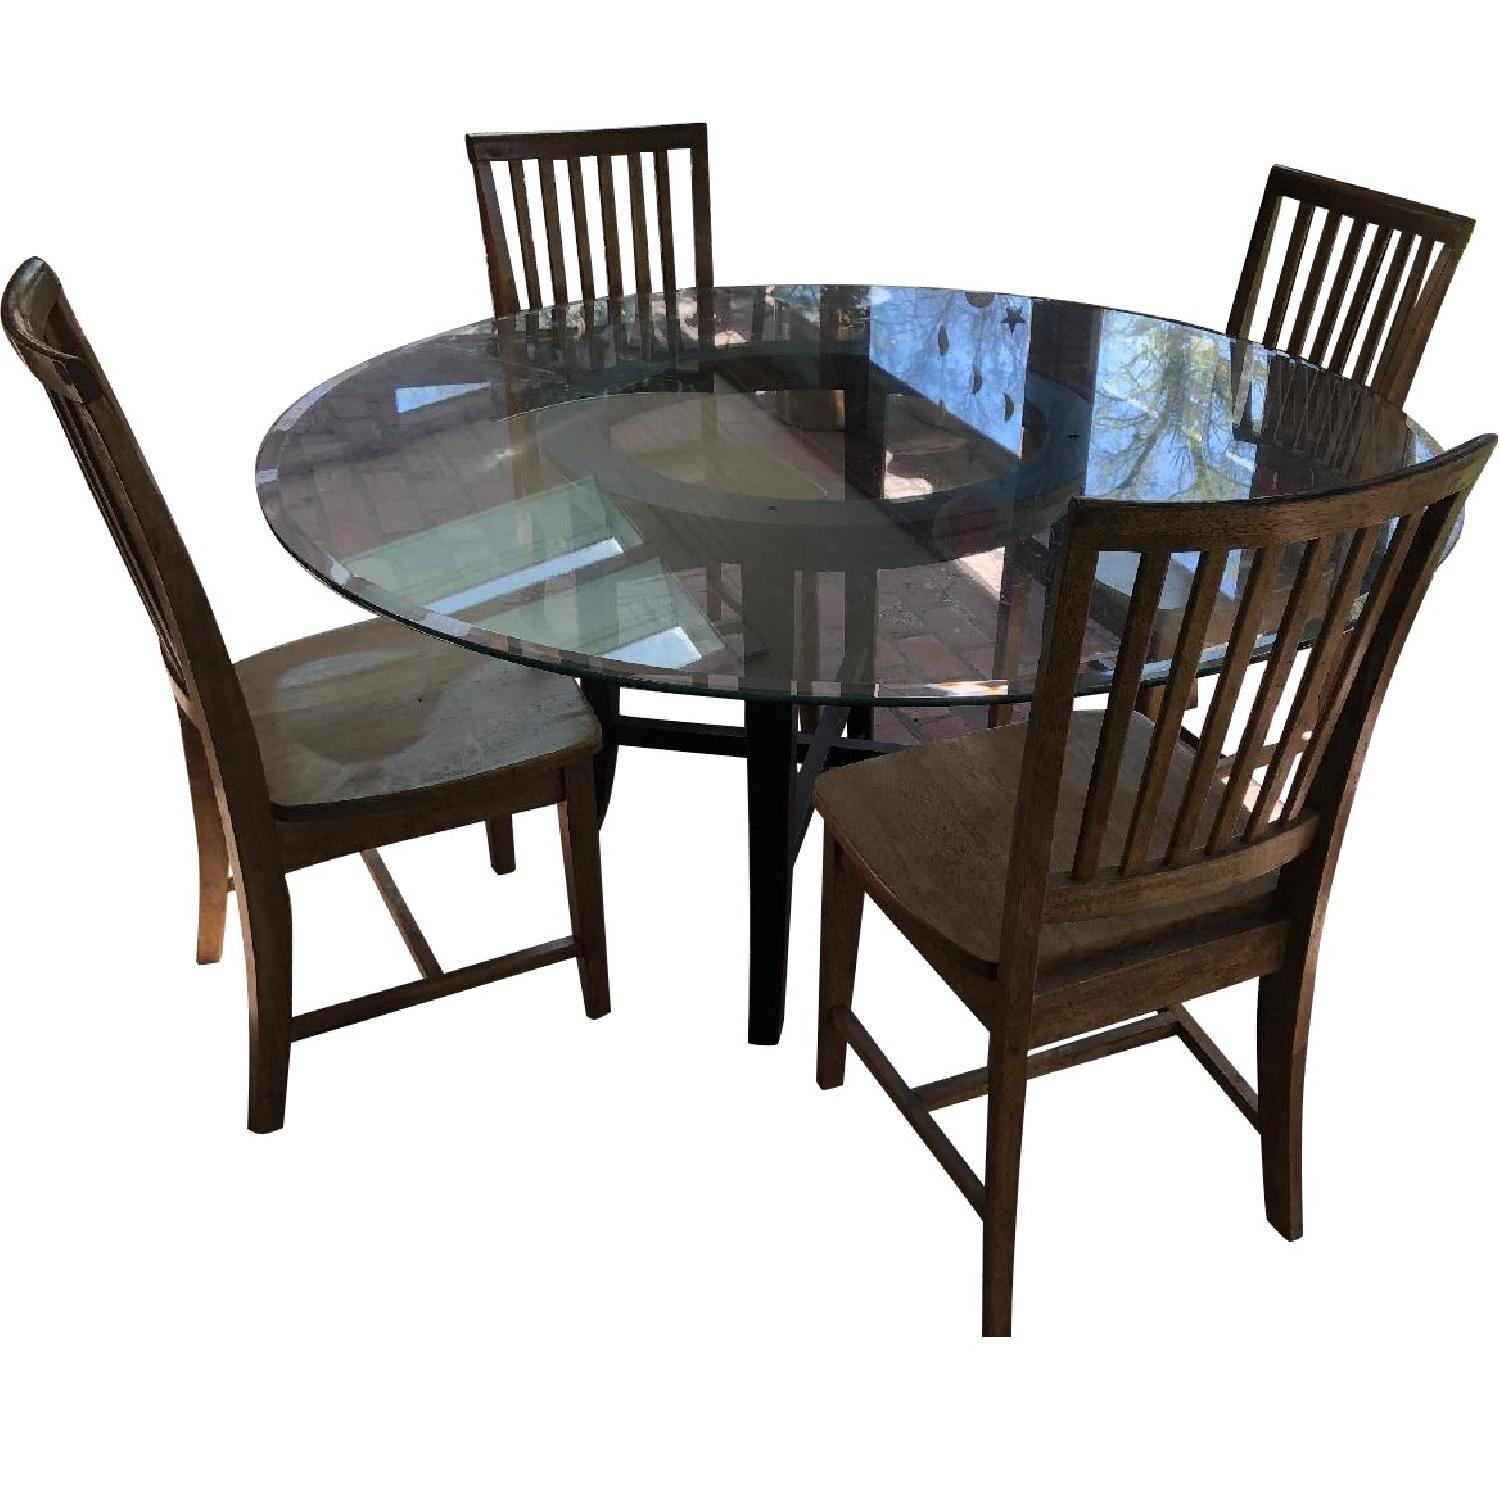 Pottery Barn Round Glass Dining Table w/ 4 Chairs